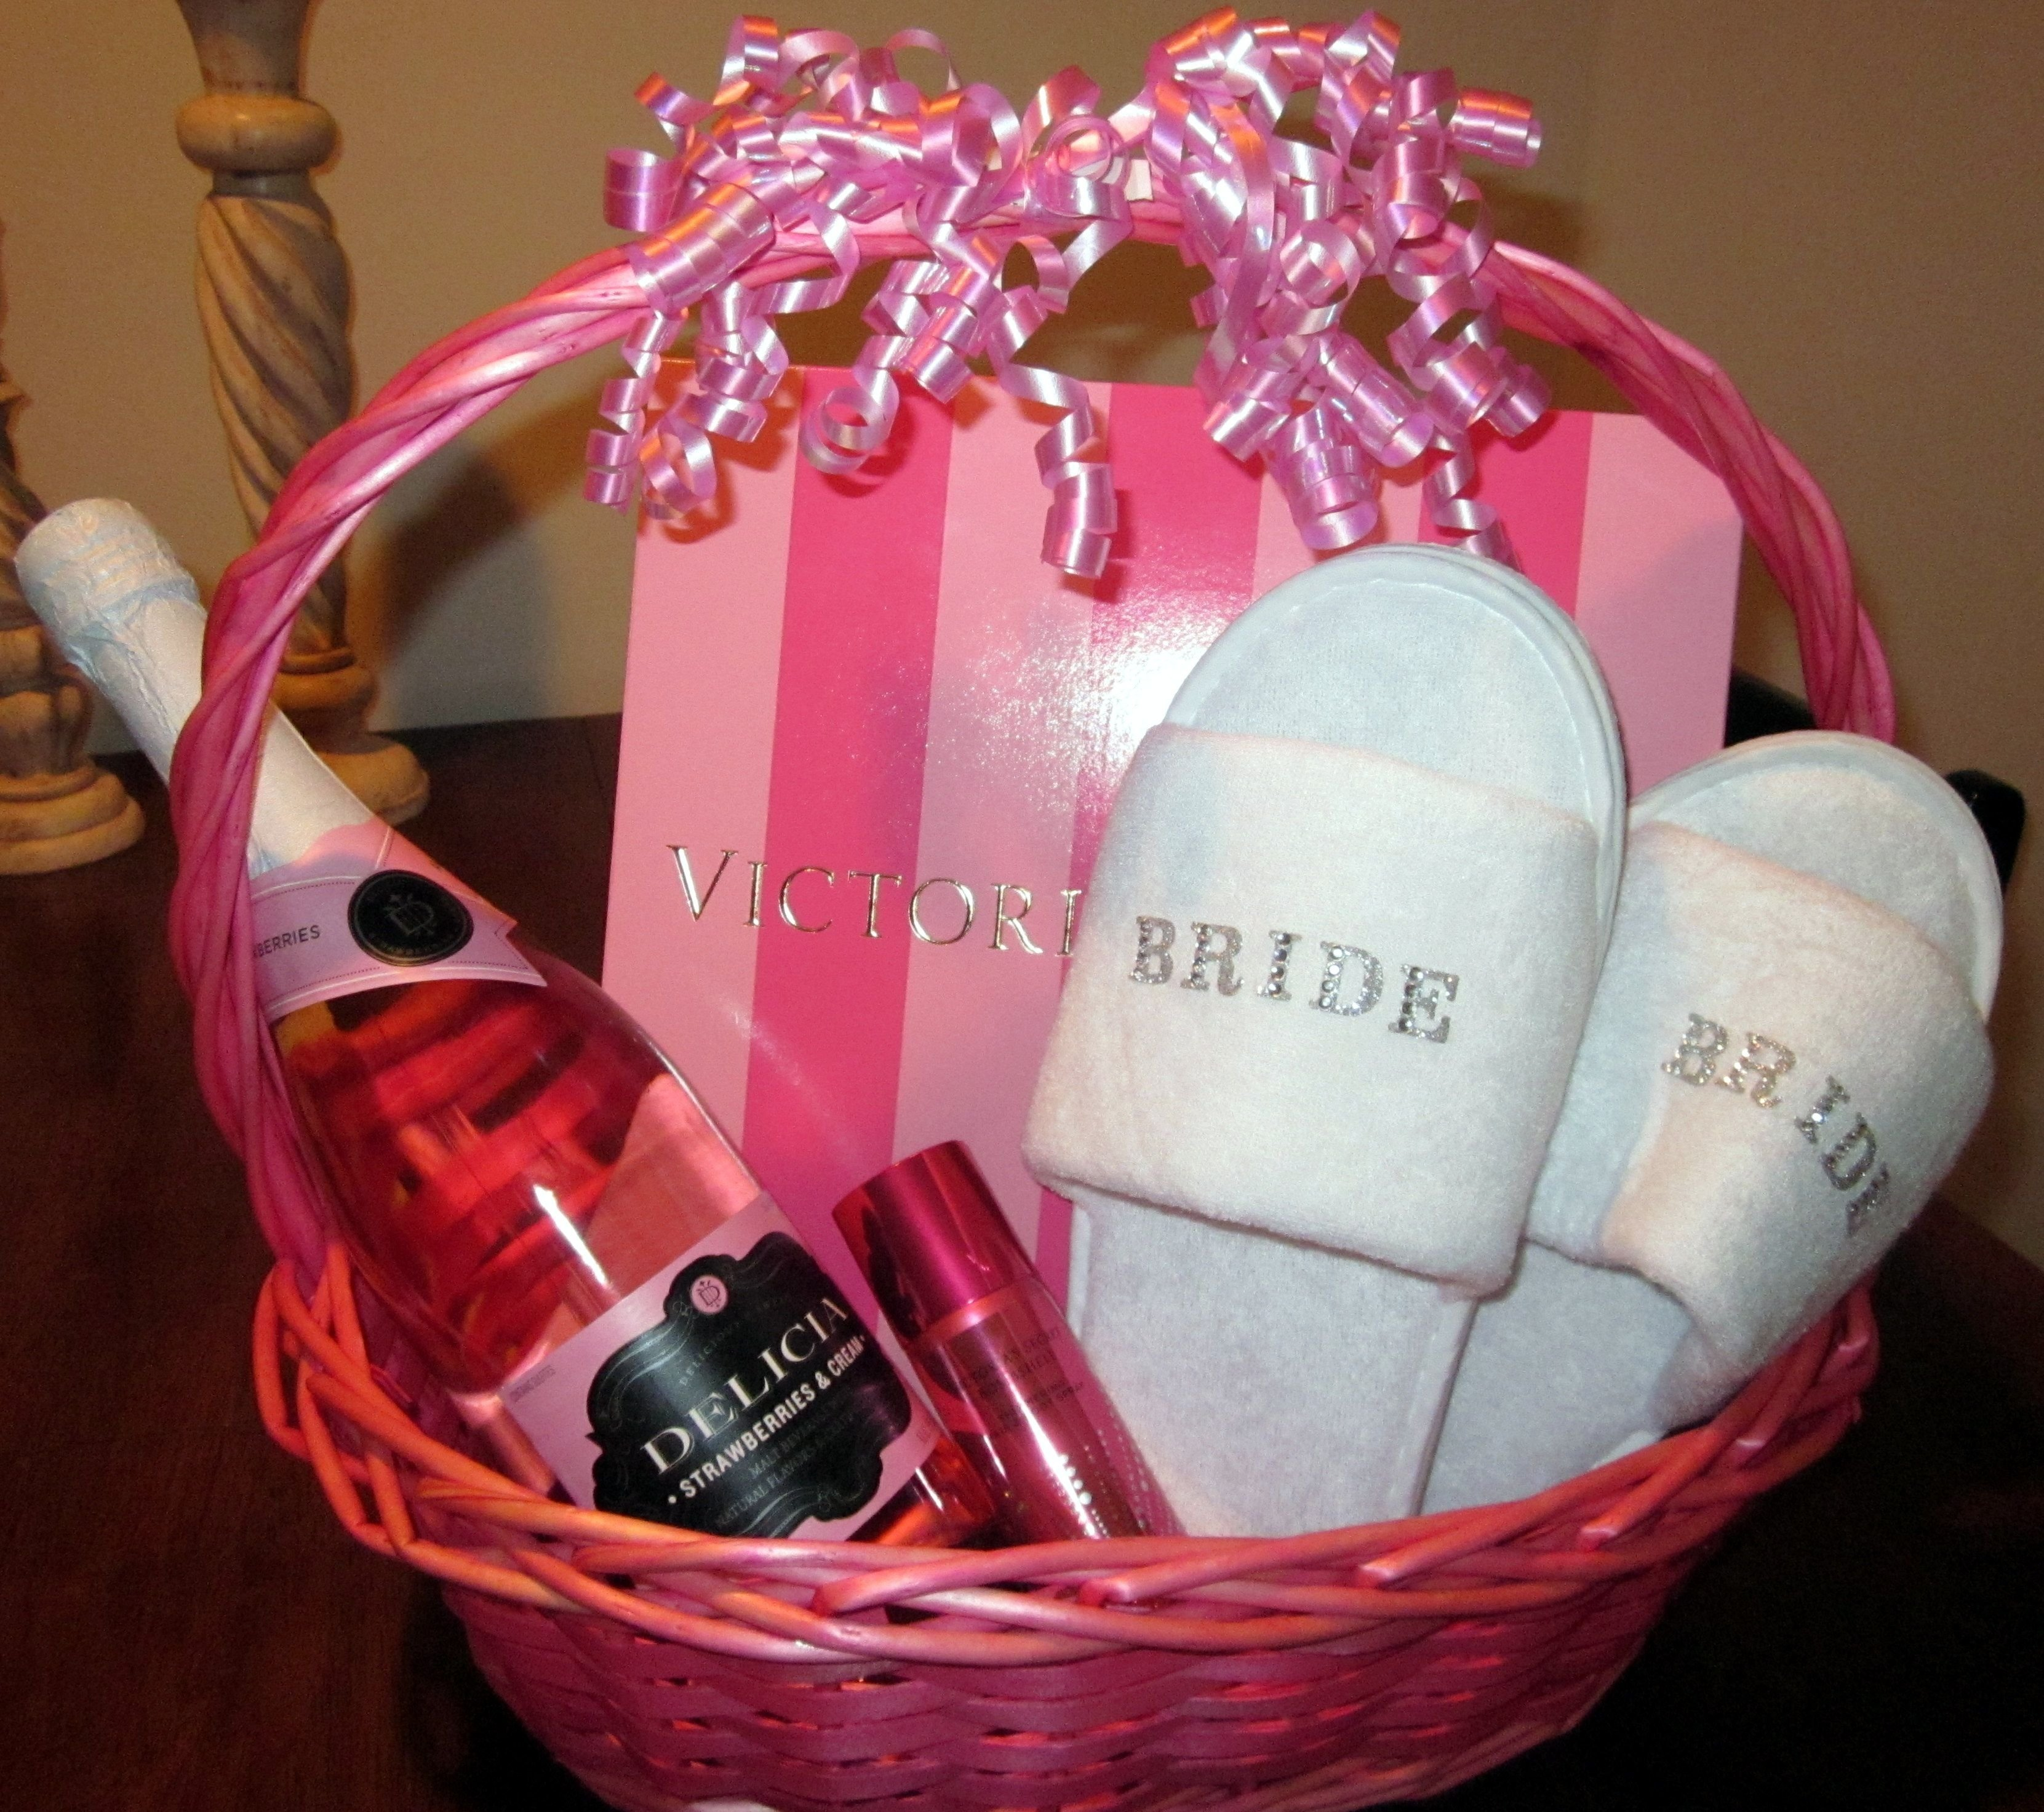 10 Most Recommended Ideas For A Bridal Shower Gift bridal shower gift ideas shell adore spa slippers wedding